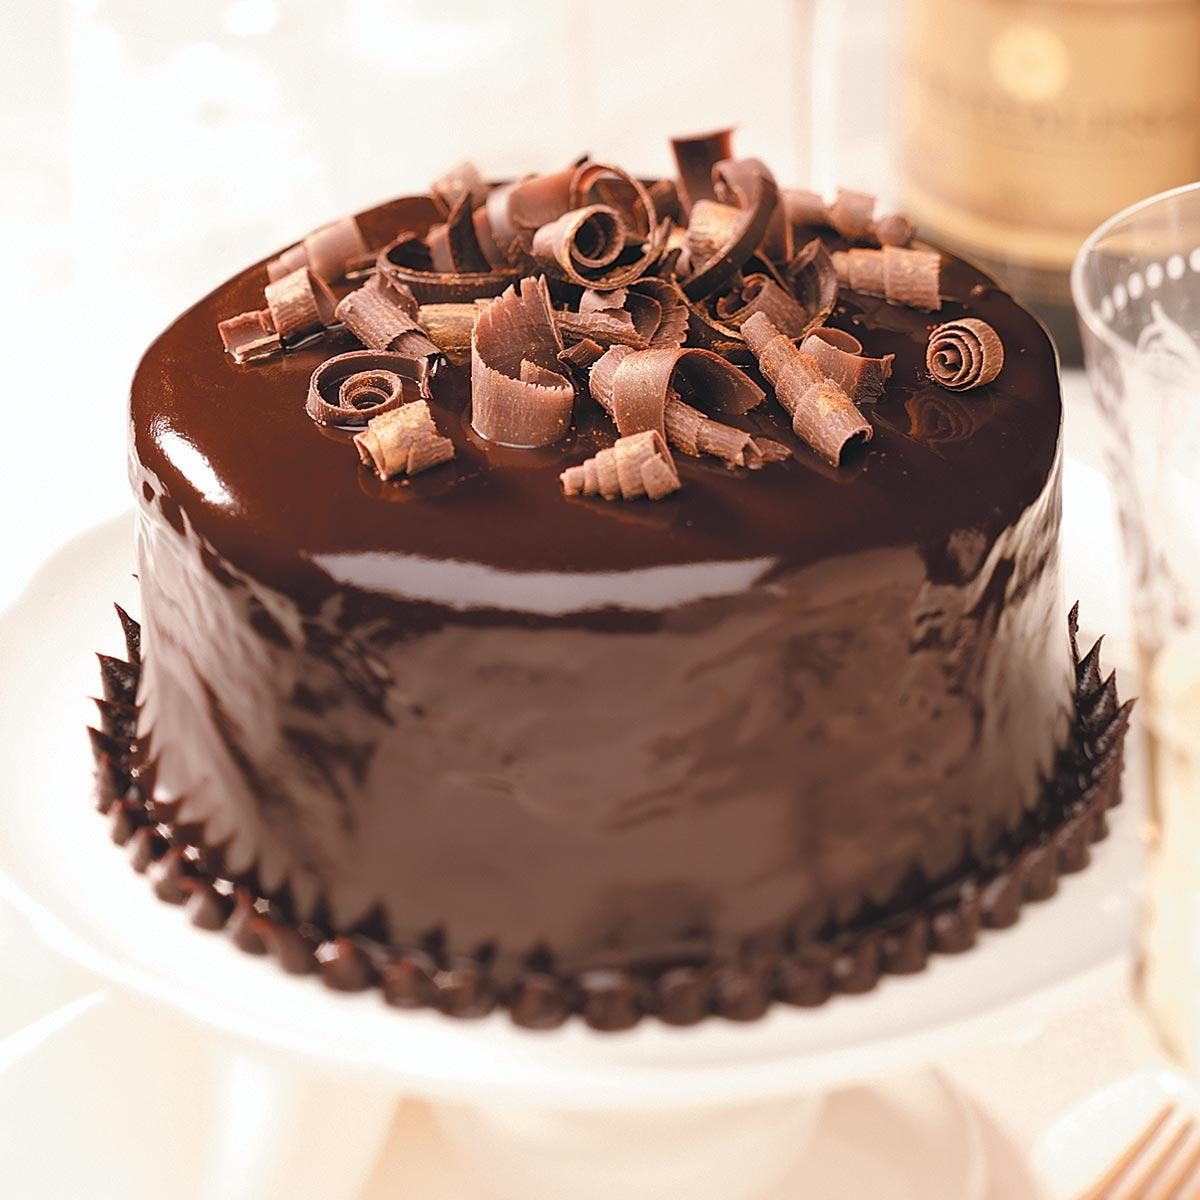 Chocolate Frosting Recipes | Taste of Home